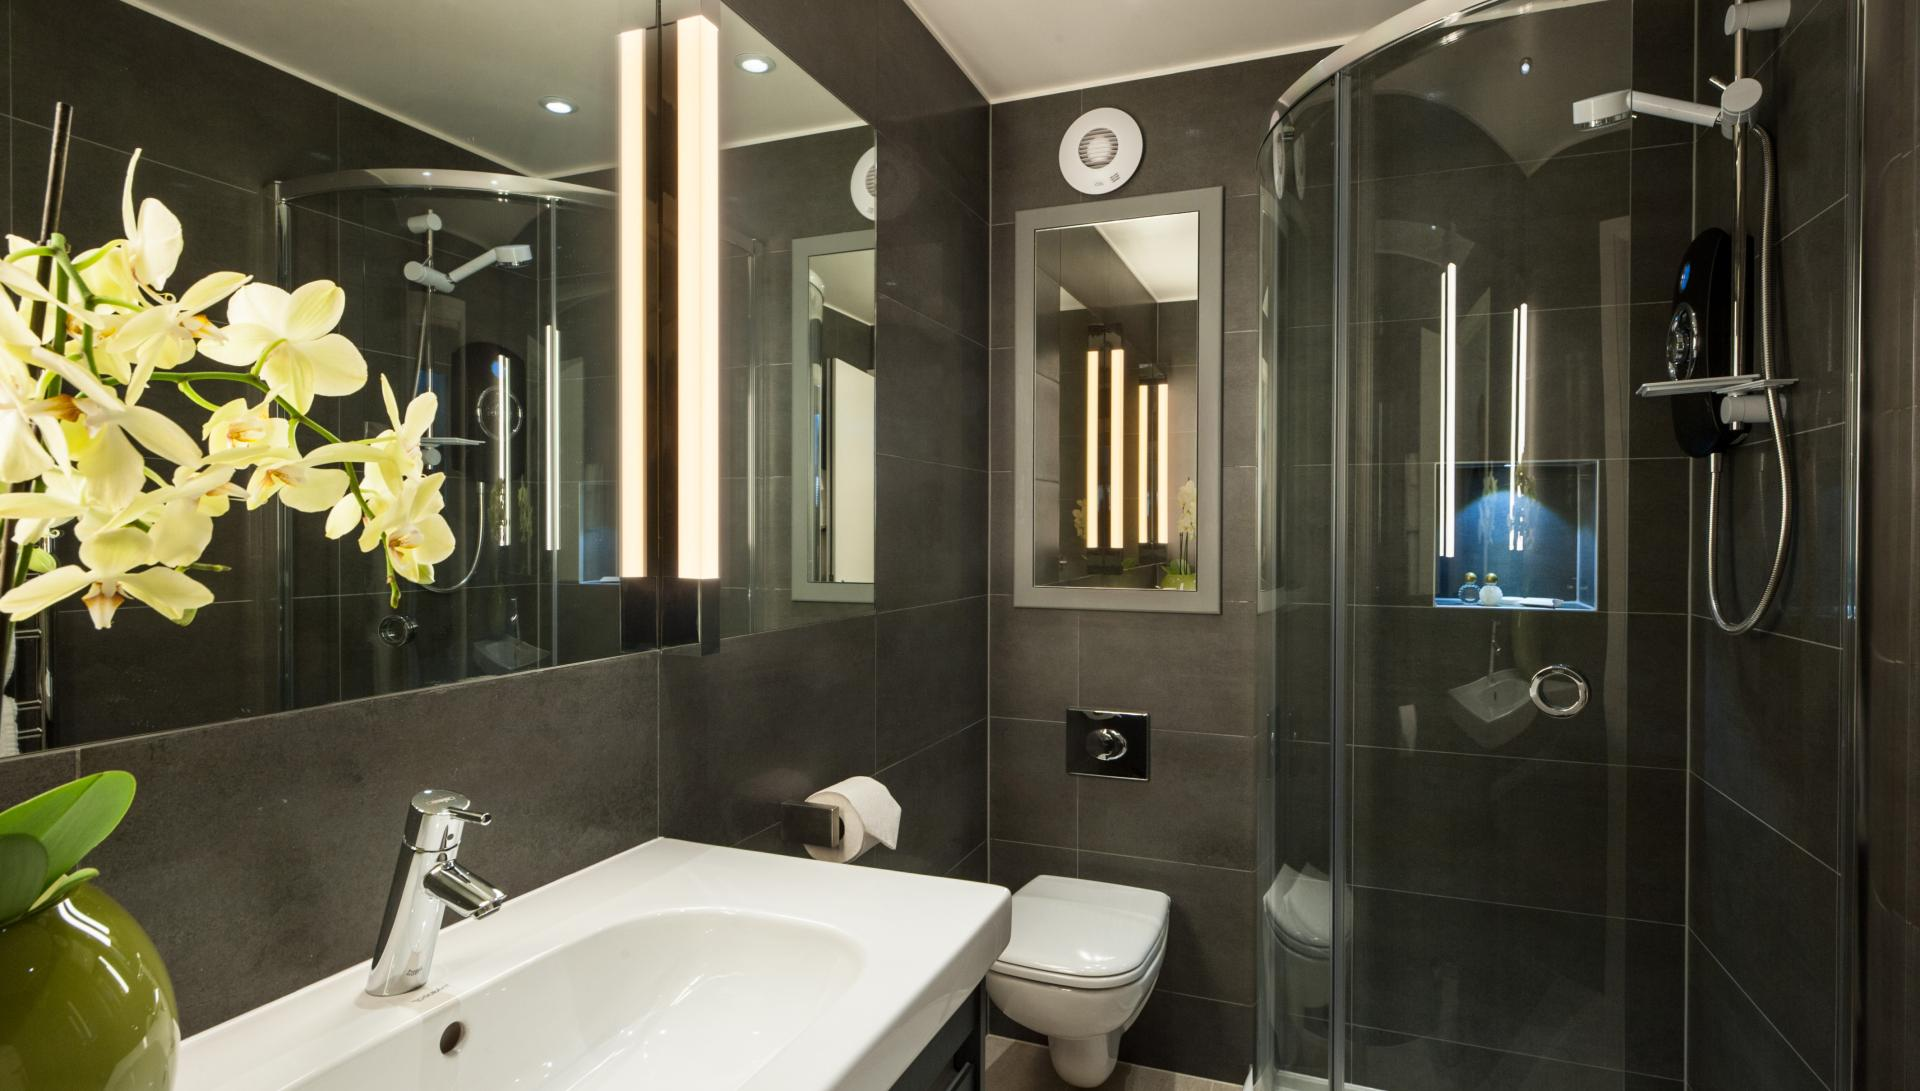 Bathroom at Chiltern Street Apartments